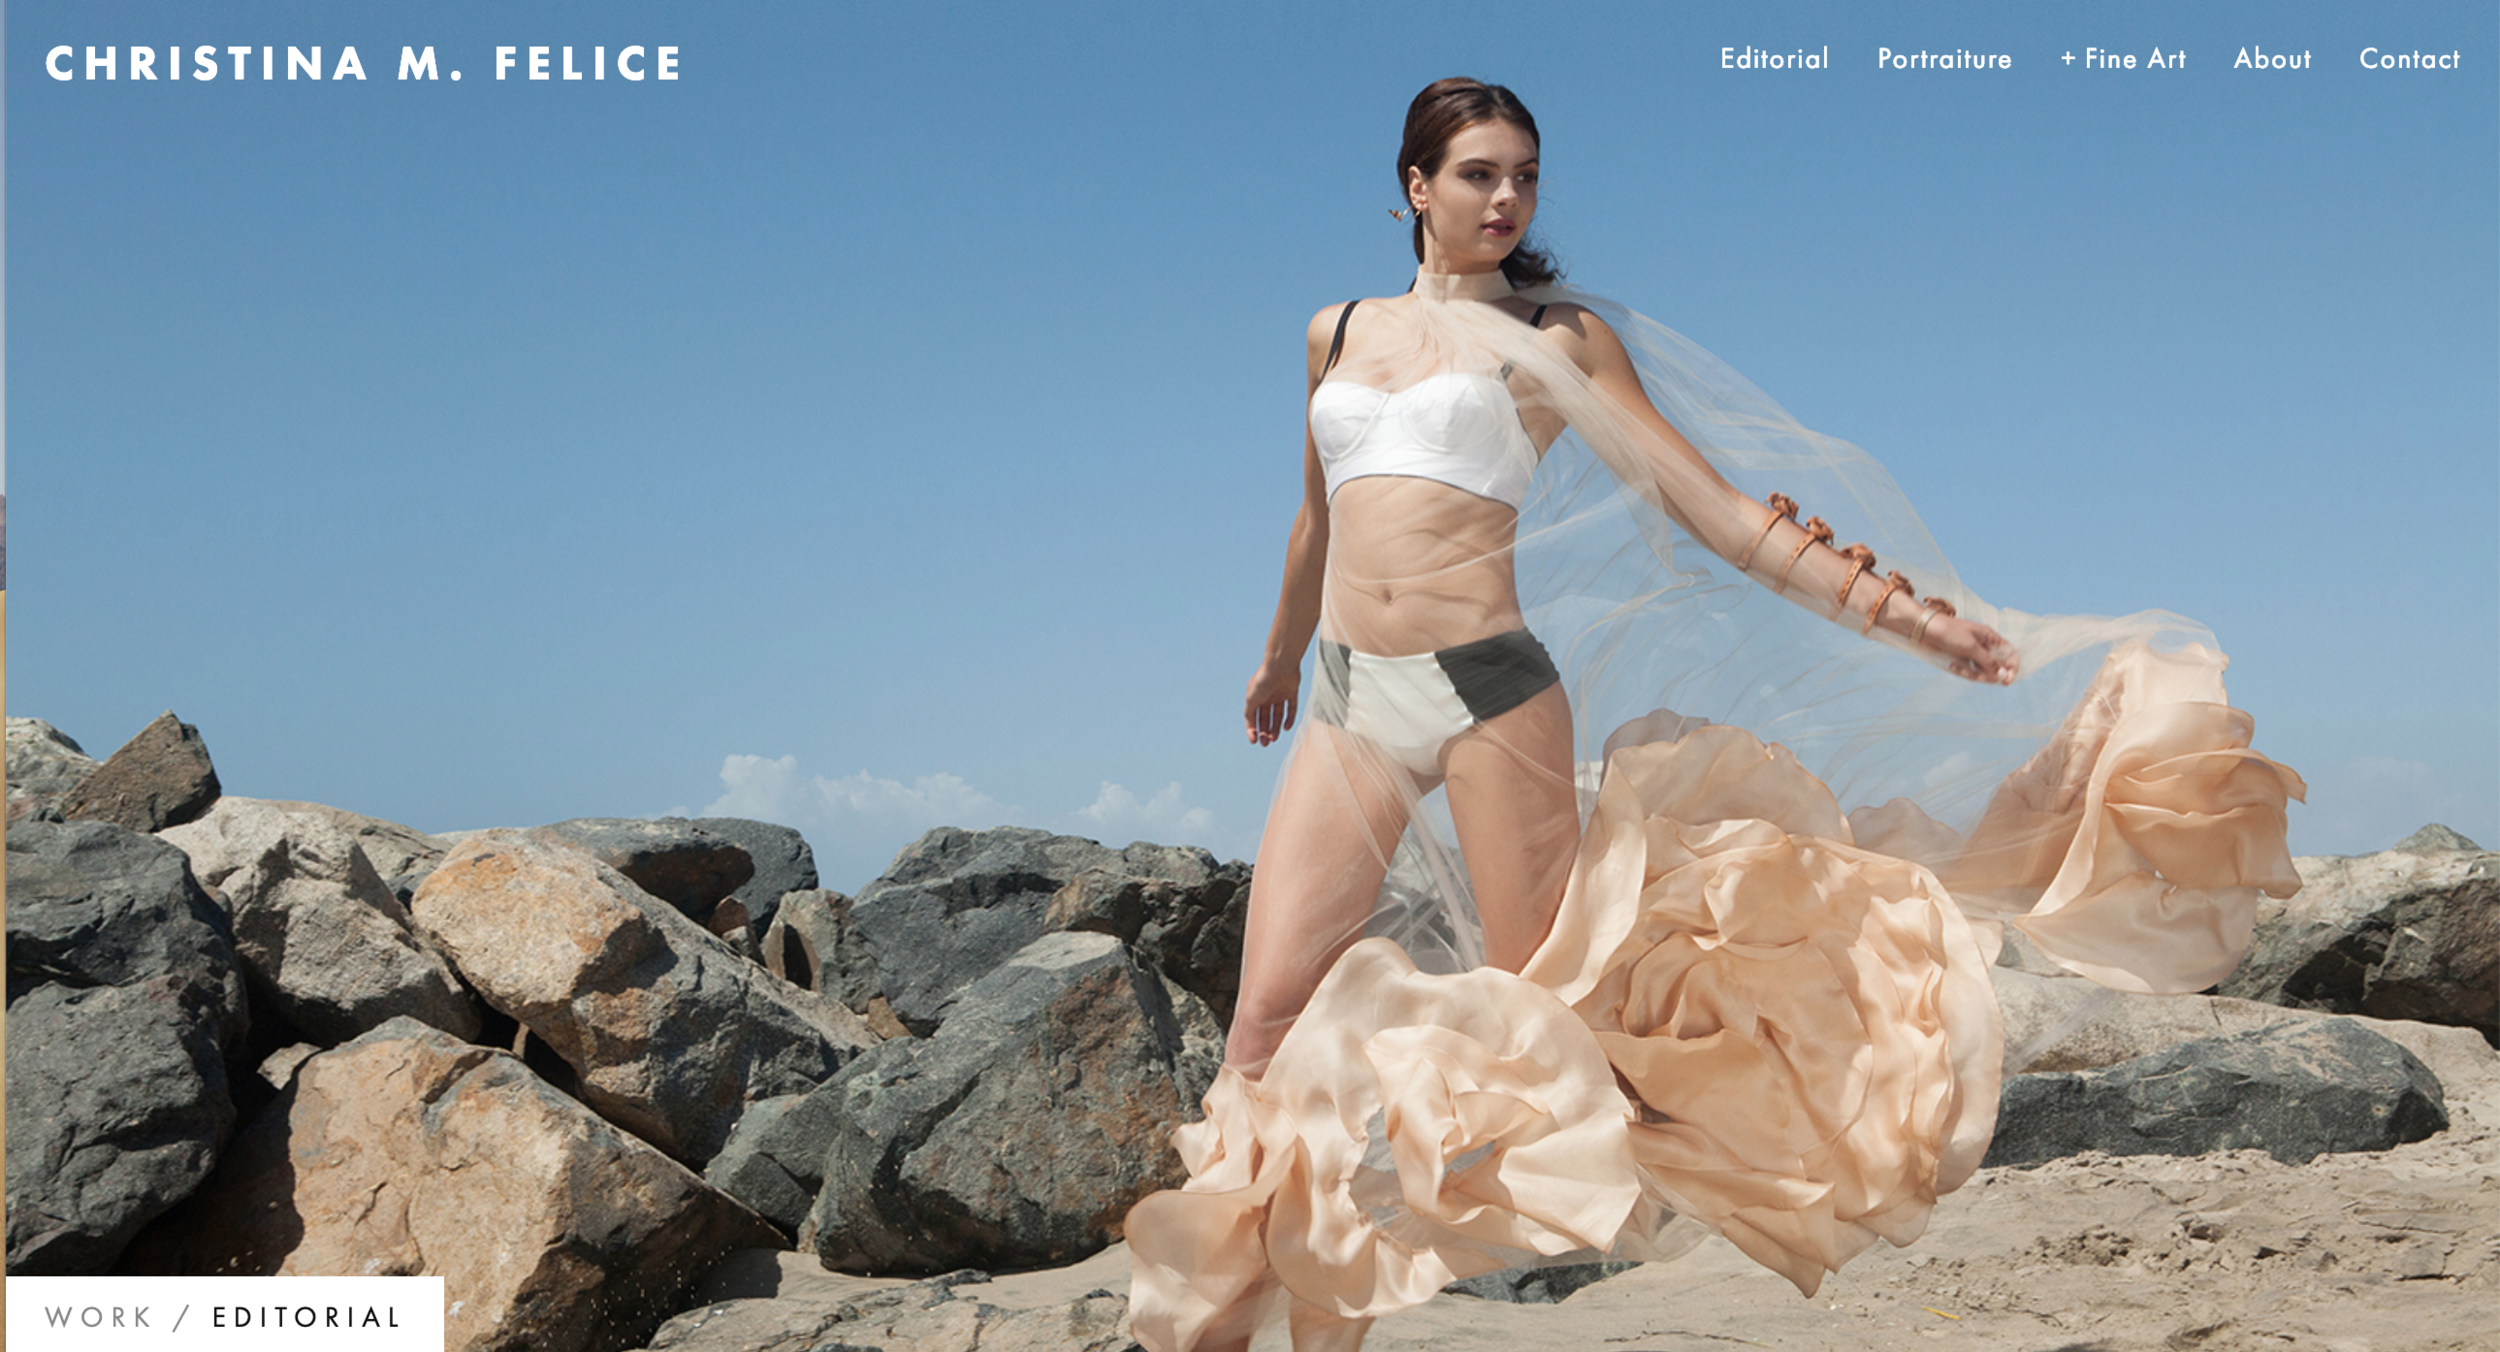 CHRISTINA M. FELICE | PHOTOGRAPHY AND FINE ART   Website design and format